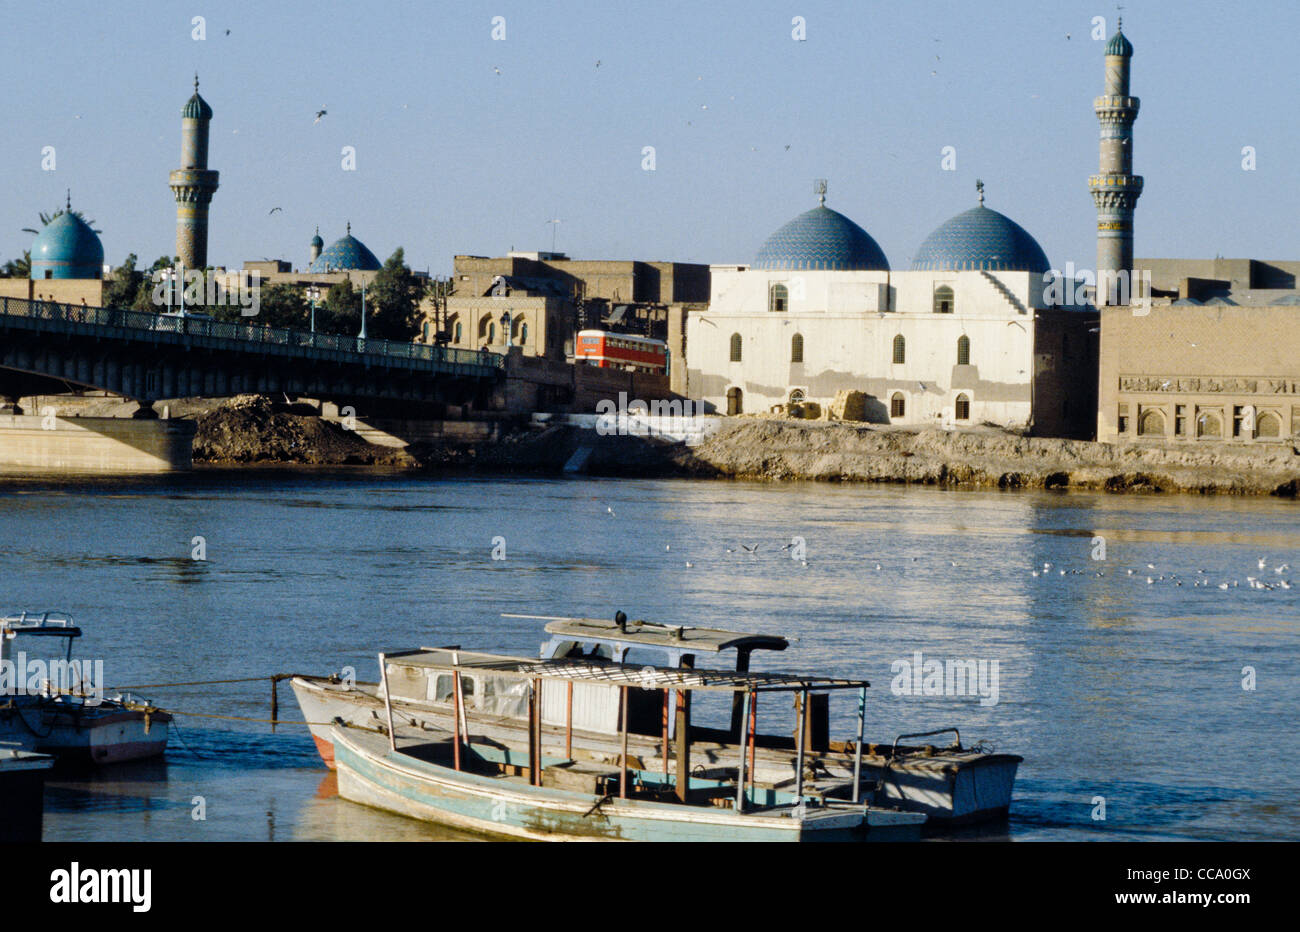 Baghdad, capital city of Iraq, and banks of Tigris River in 1970s - Stock Image